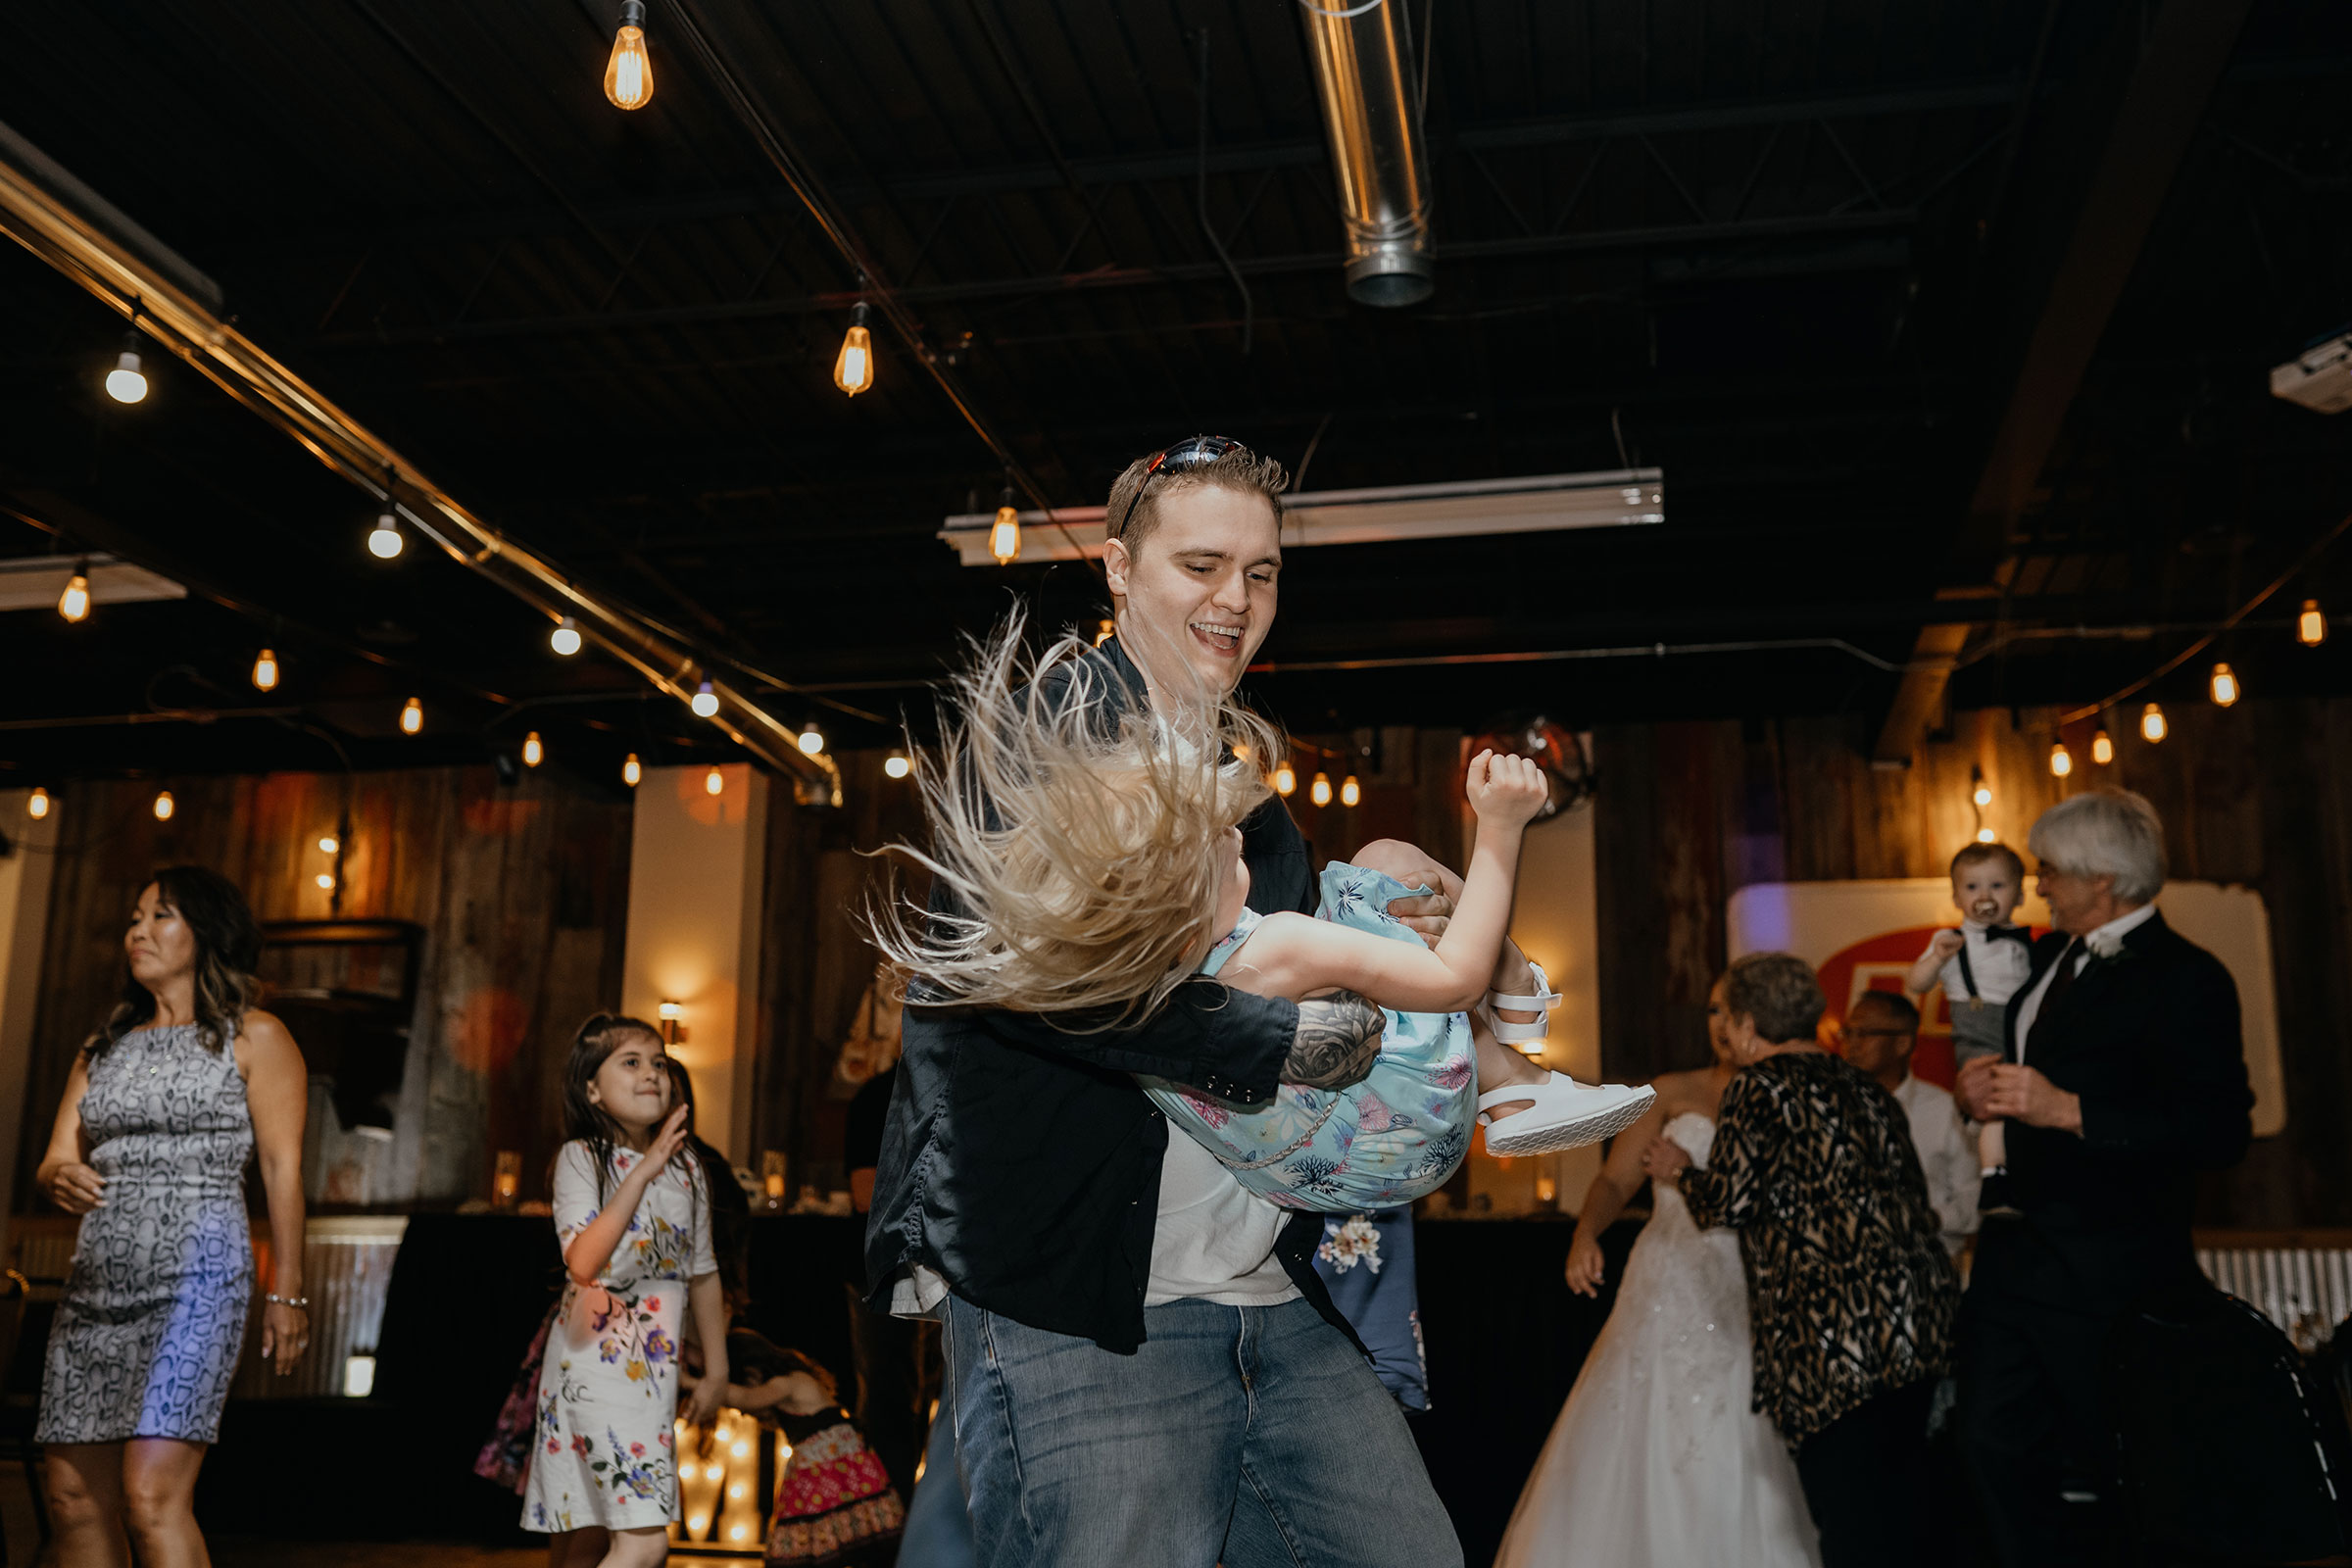 guest-dancing-with-little-girl-decades-event-center-building-desmoines-iowa-raelyn-ramey-photography..jpg